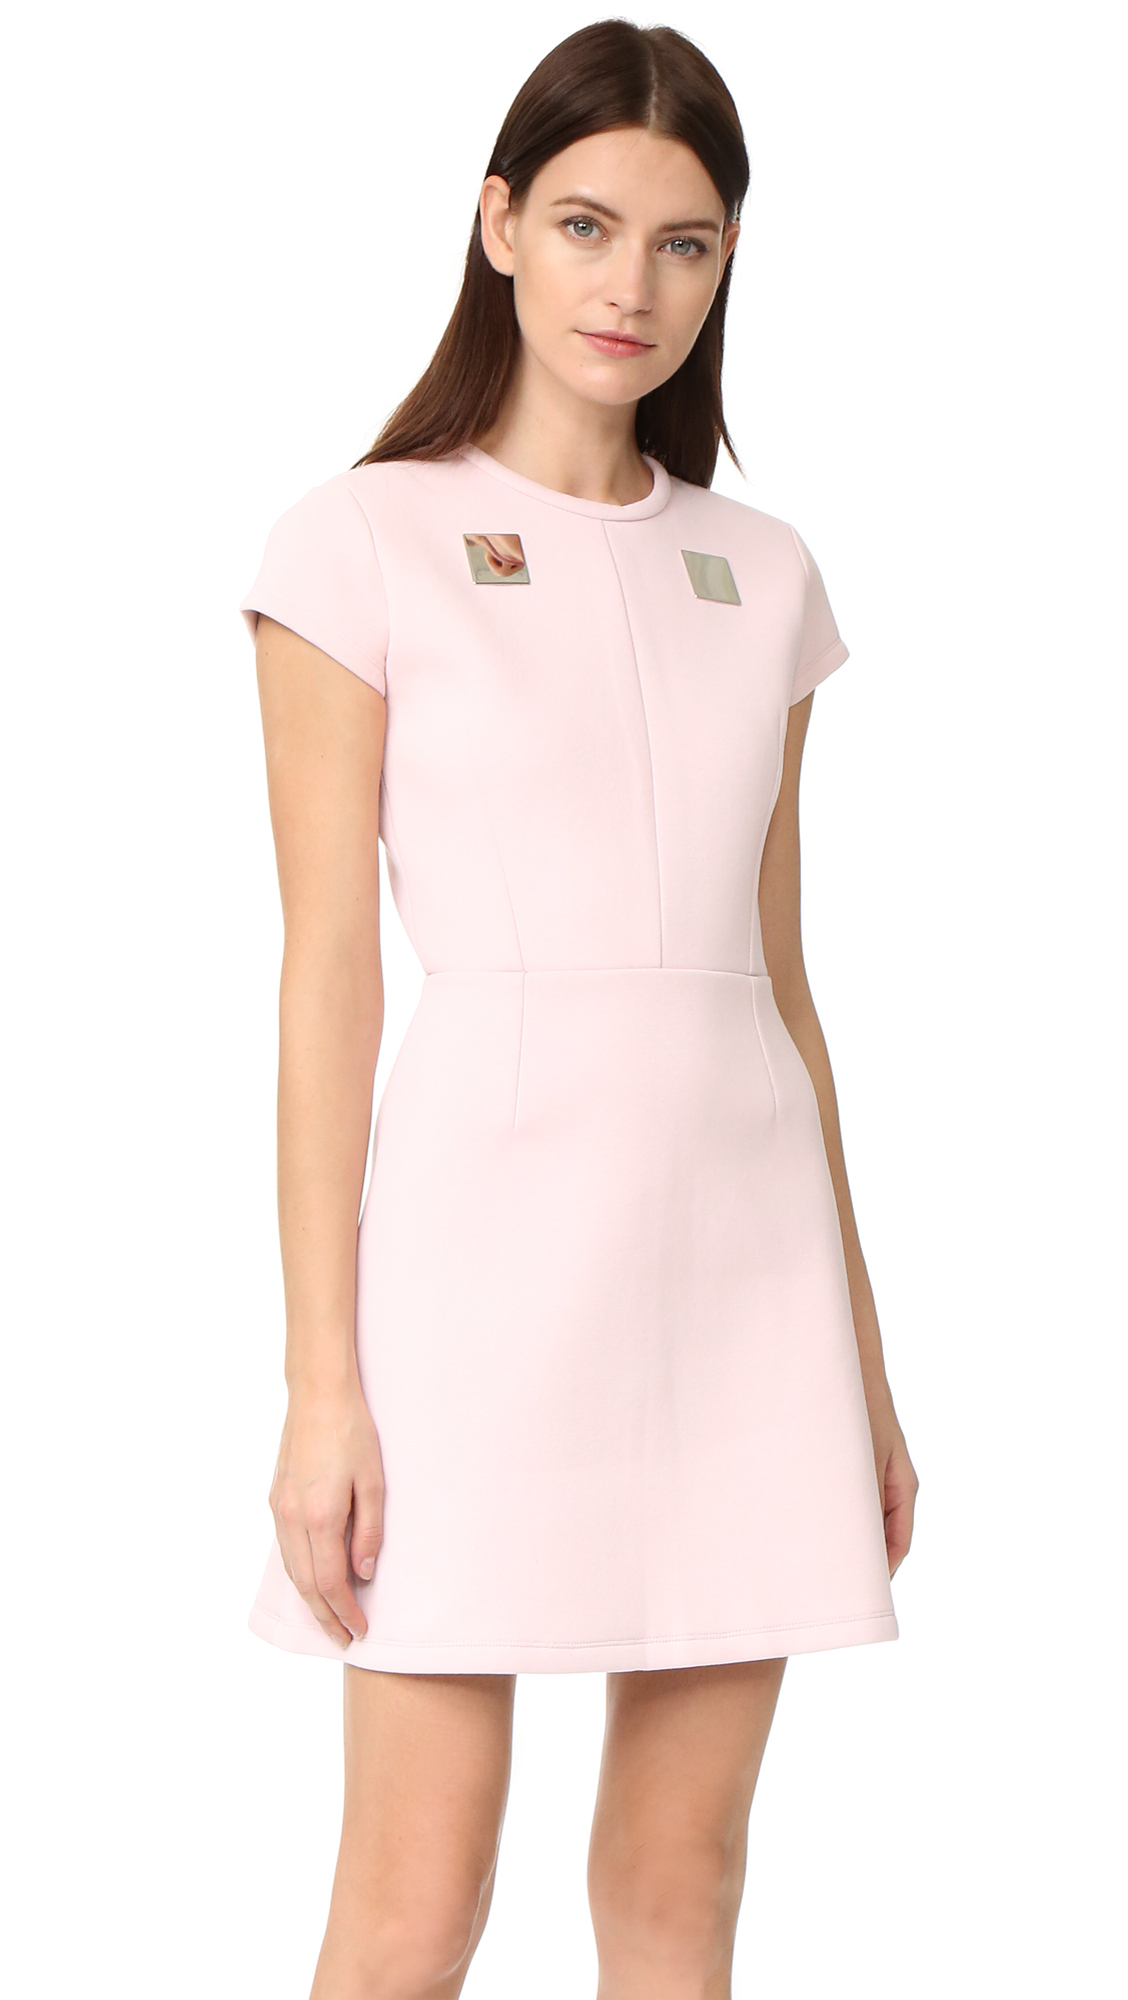 Carven Plate Yoke Dress - Rose Pale